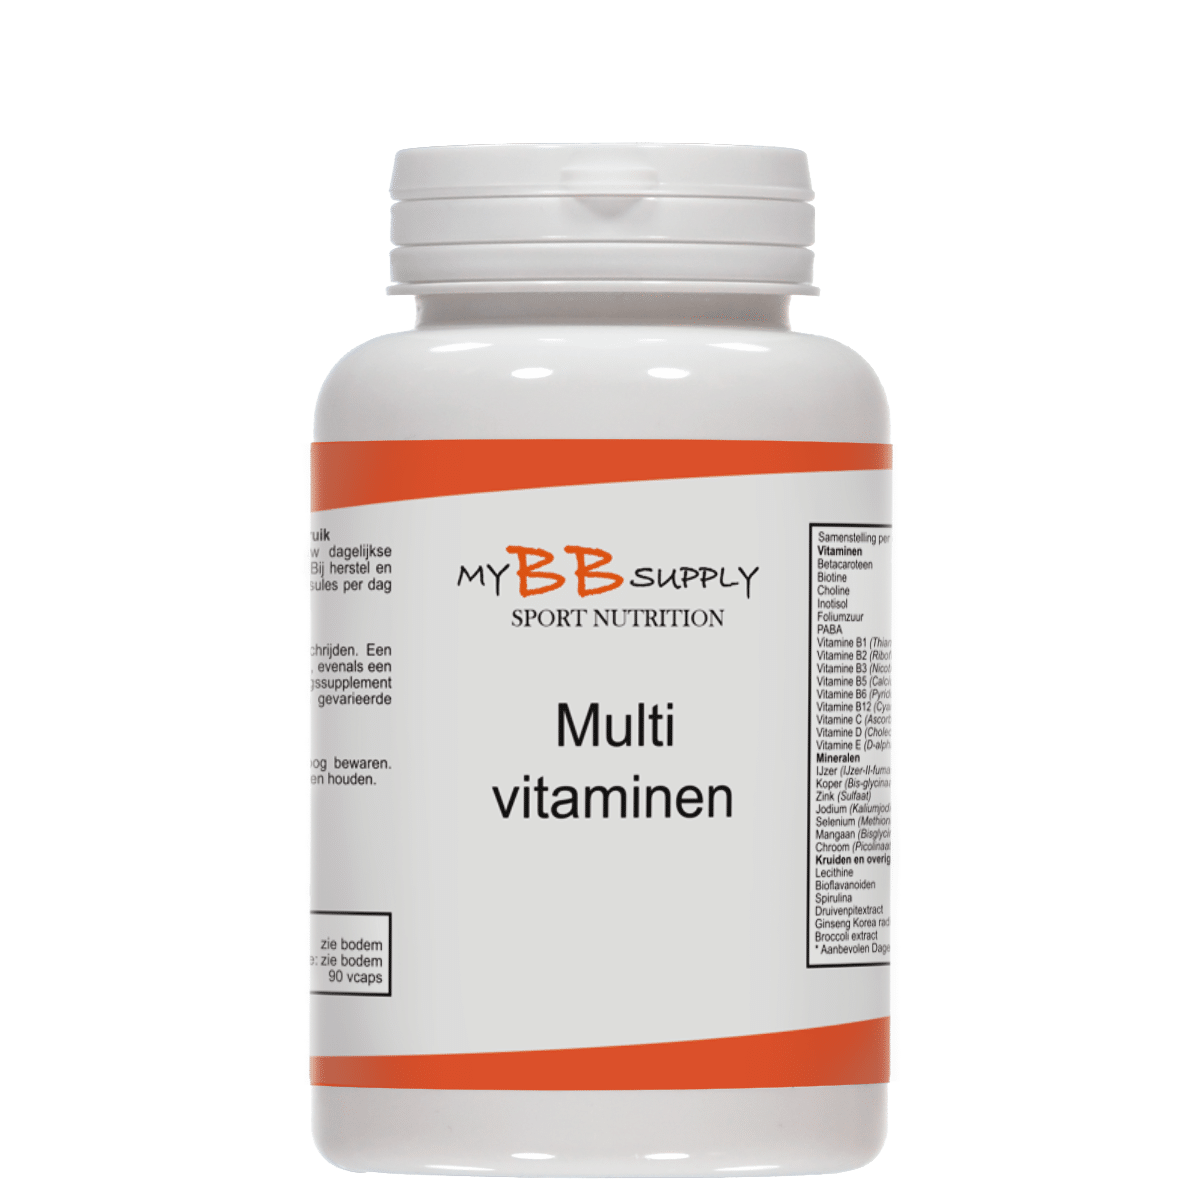 MyBBsupply Multivitaminen